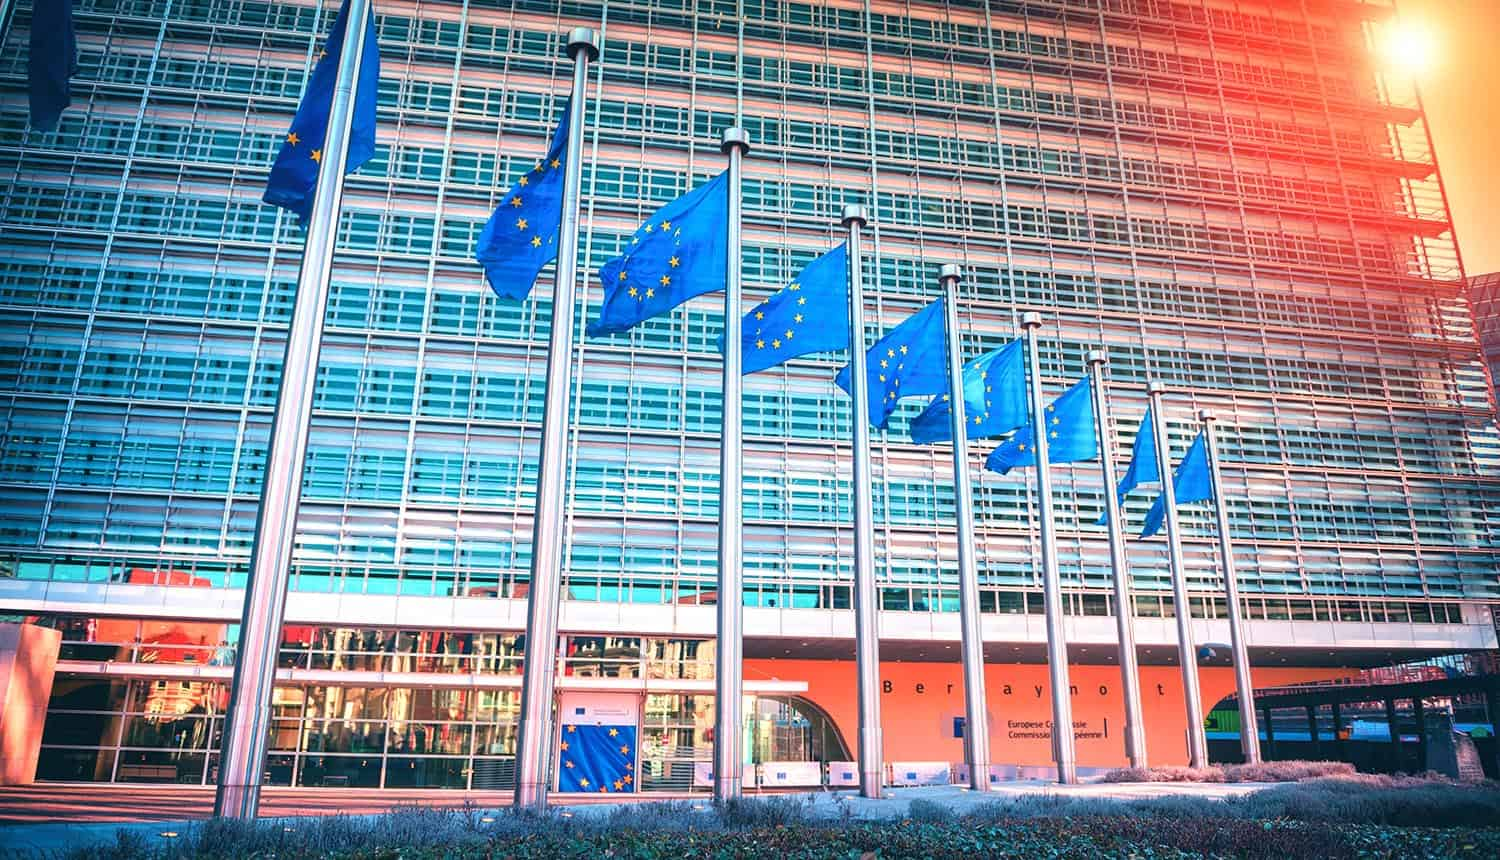 EU flags waving in front of European Parliament building showing leak of sensitive data